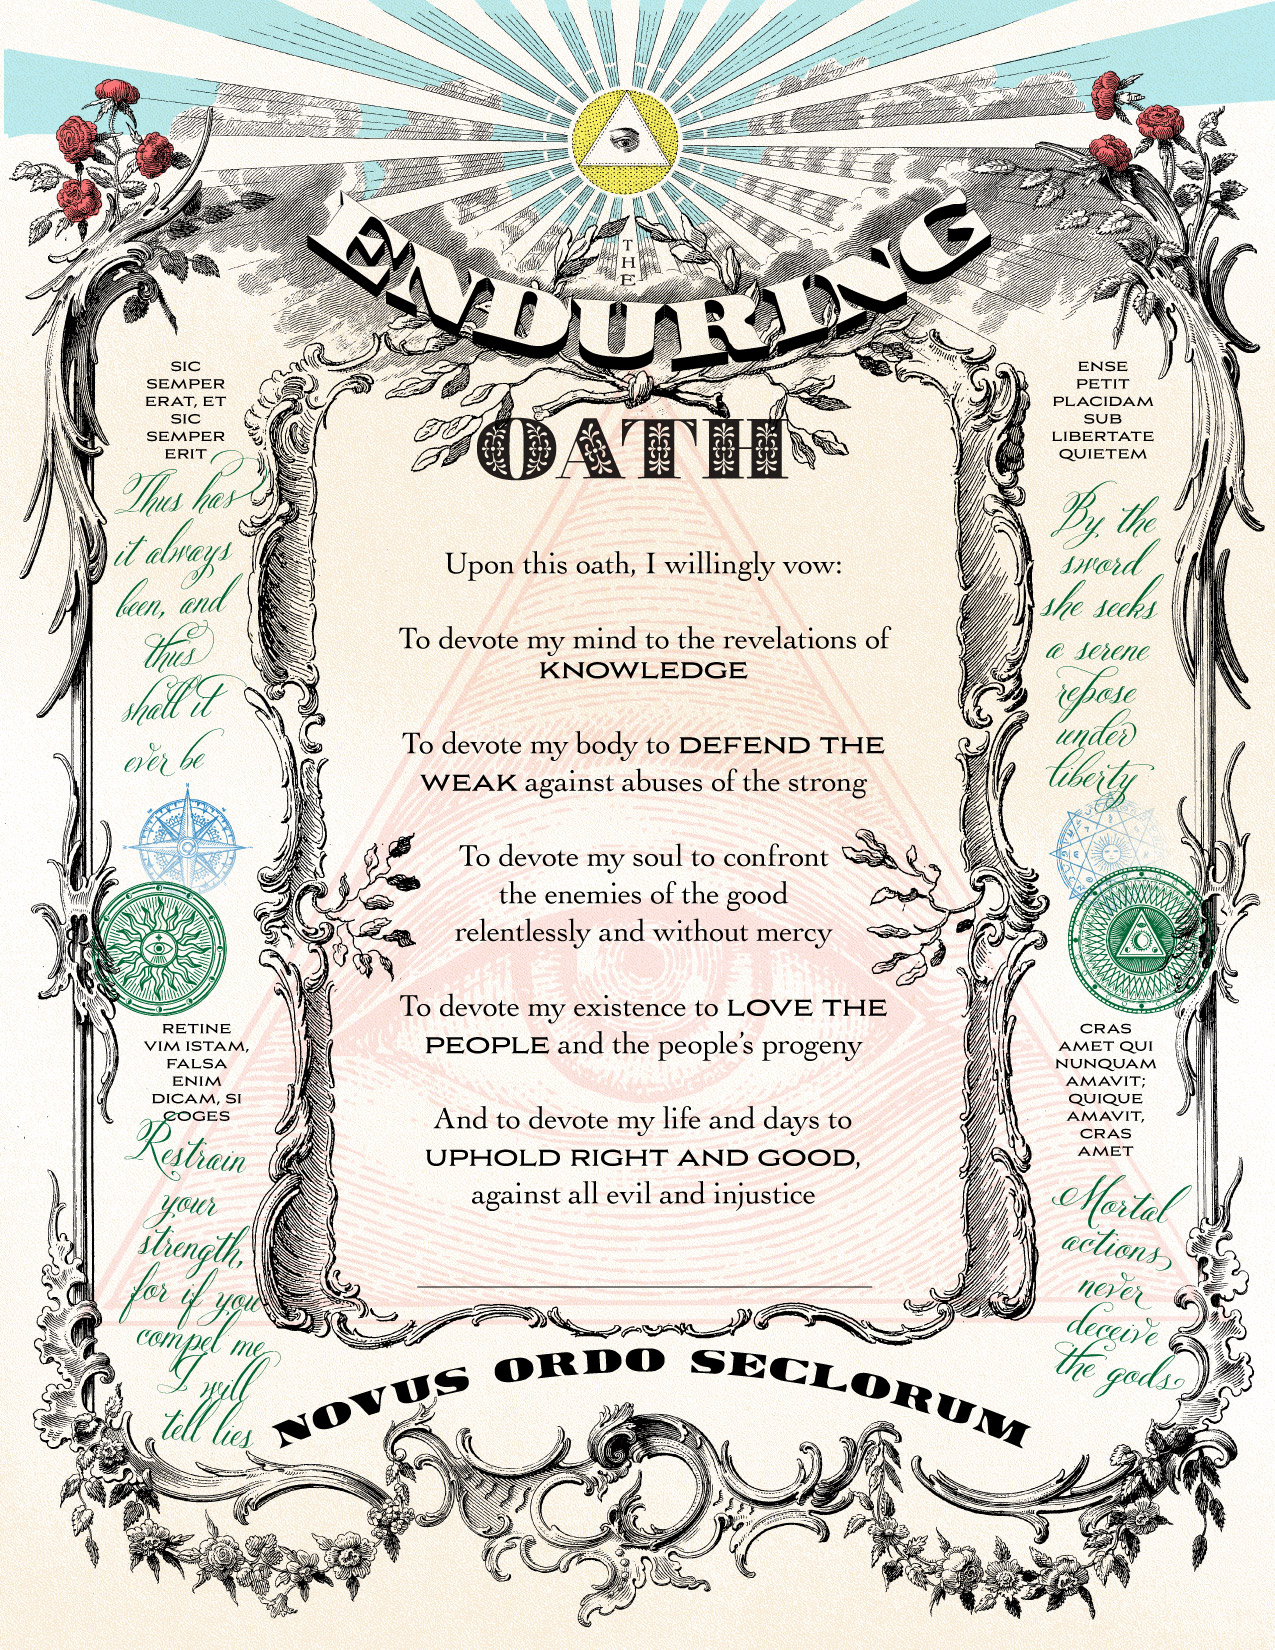 [Image] The Enduring Oath